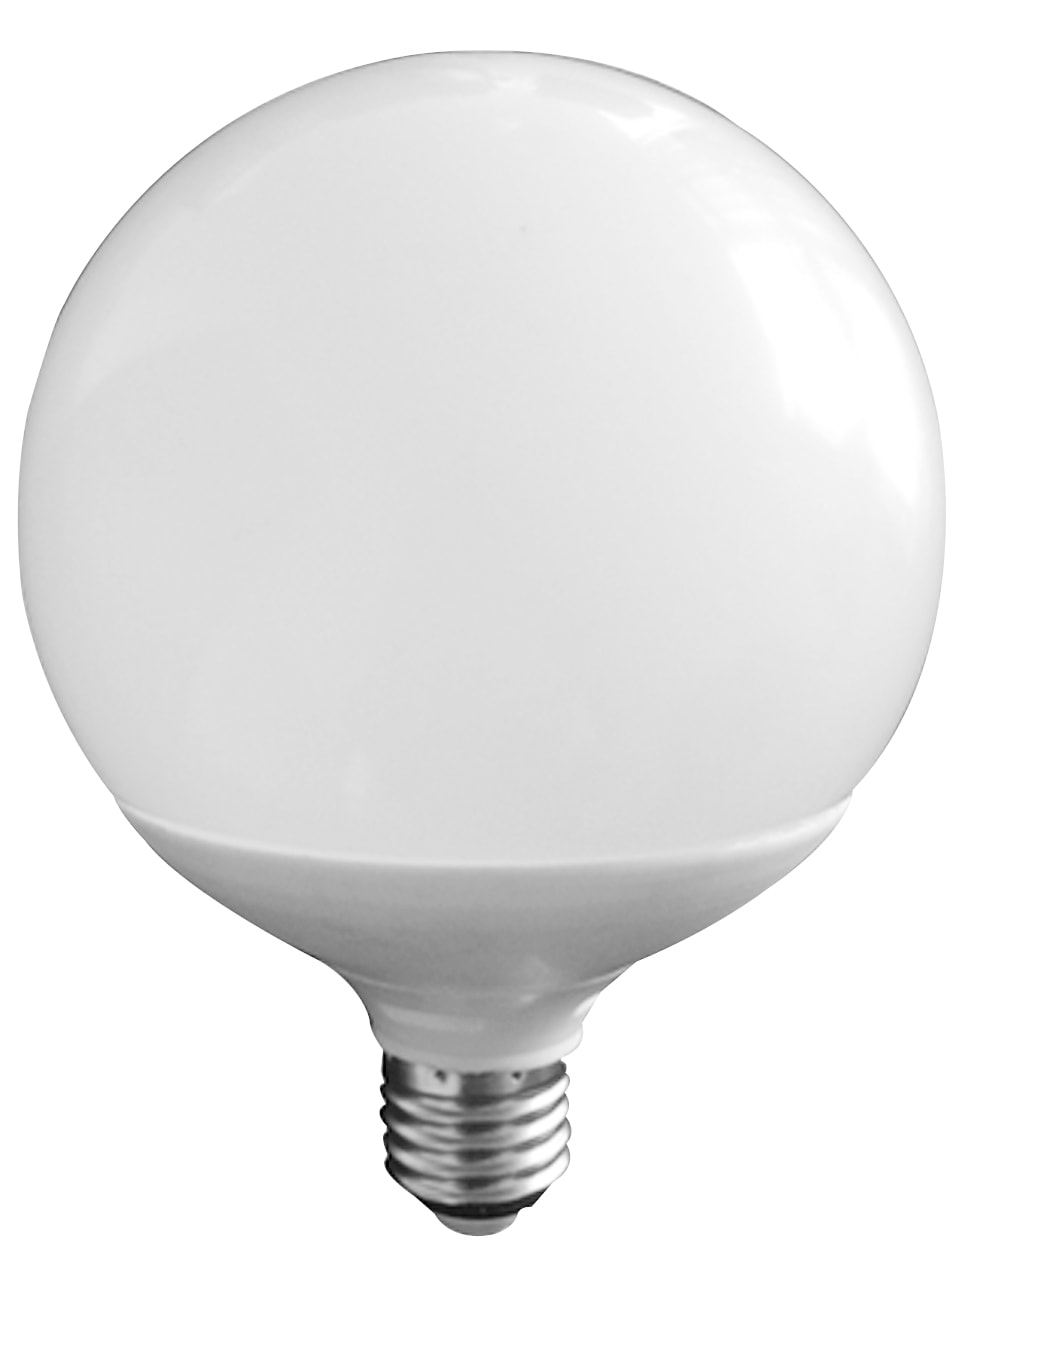 Lampadine Globo A Led Lampadina 15watt A Led Globo Attacco E27 Ecoworld Shop It